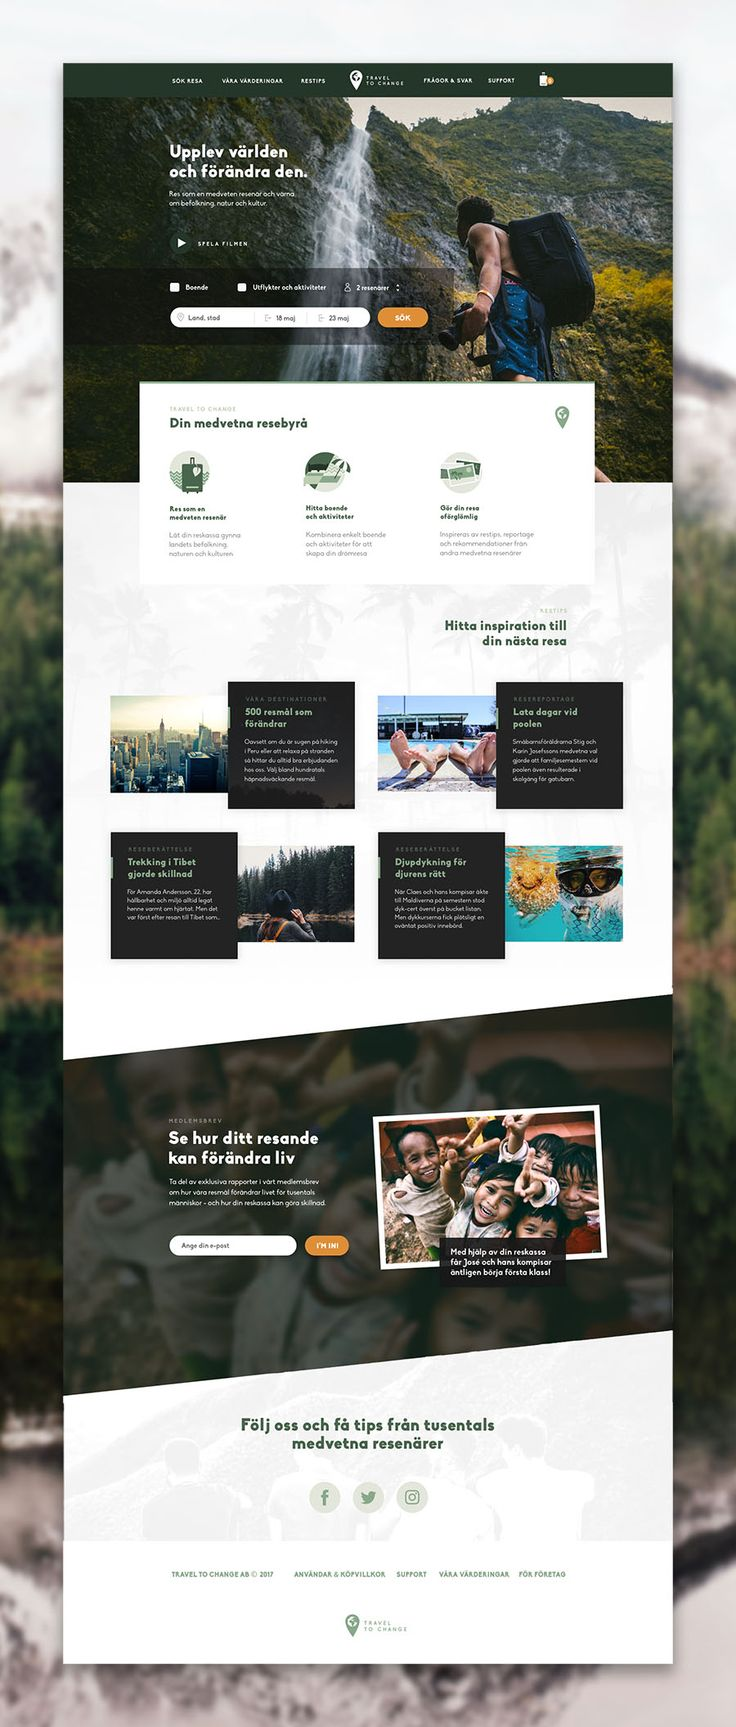 Eco tourism and responsible travel web design. Website for a green traveling agency - Changing the way we travel the world.